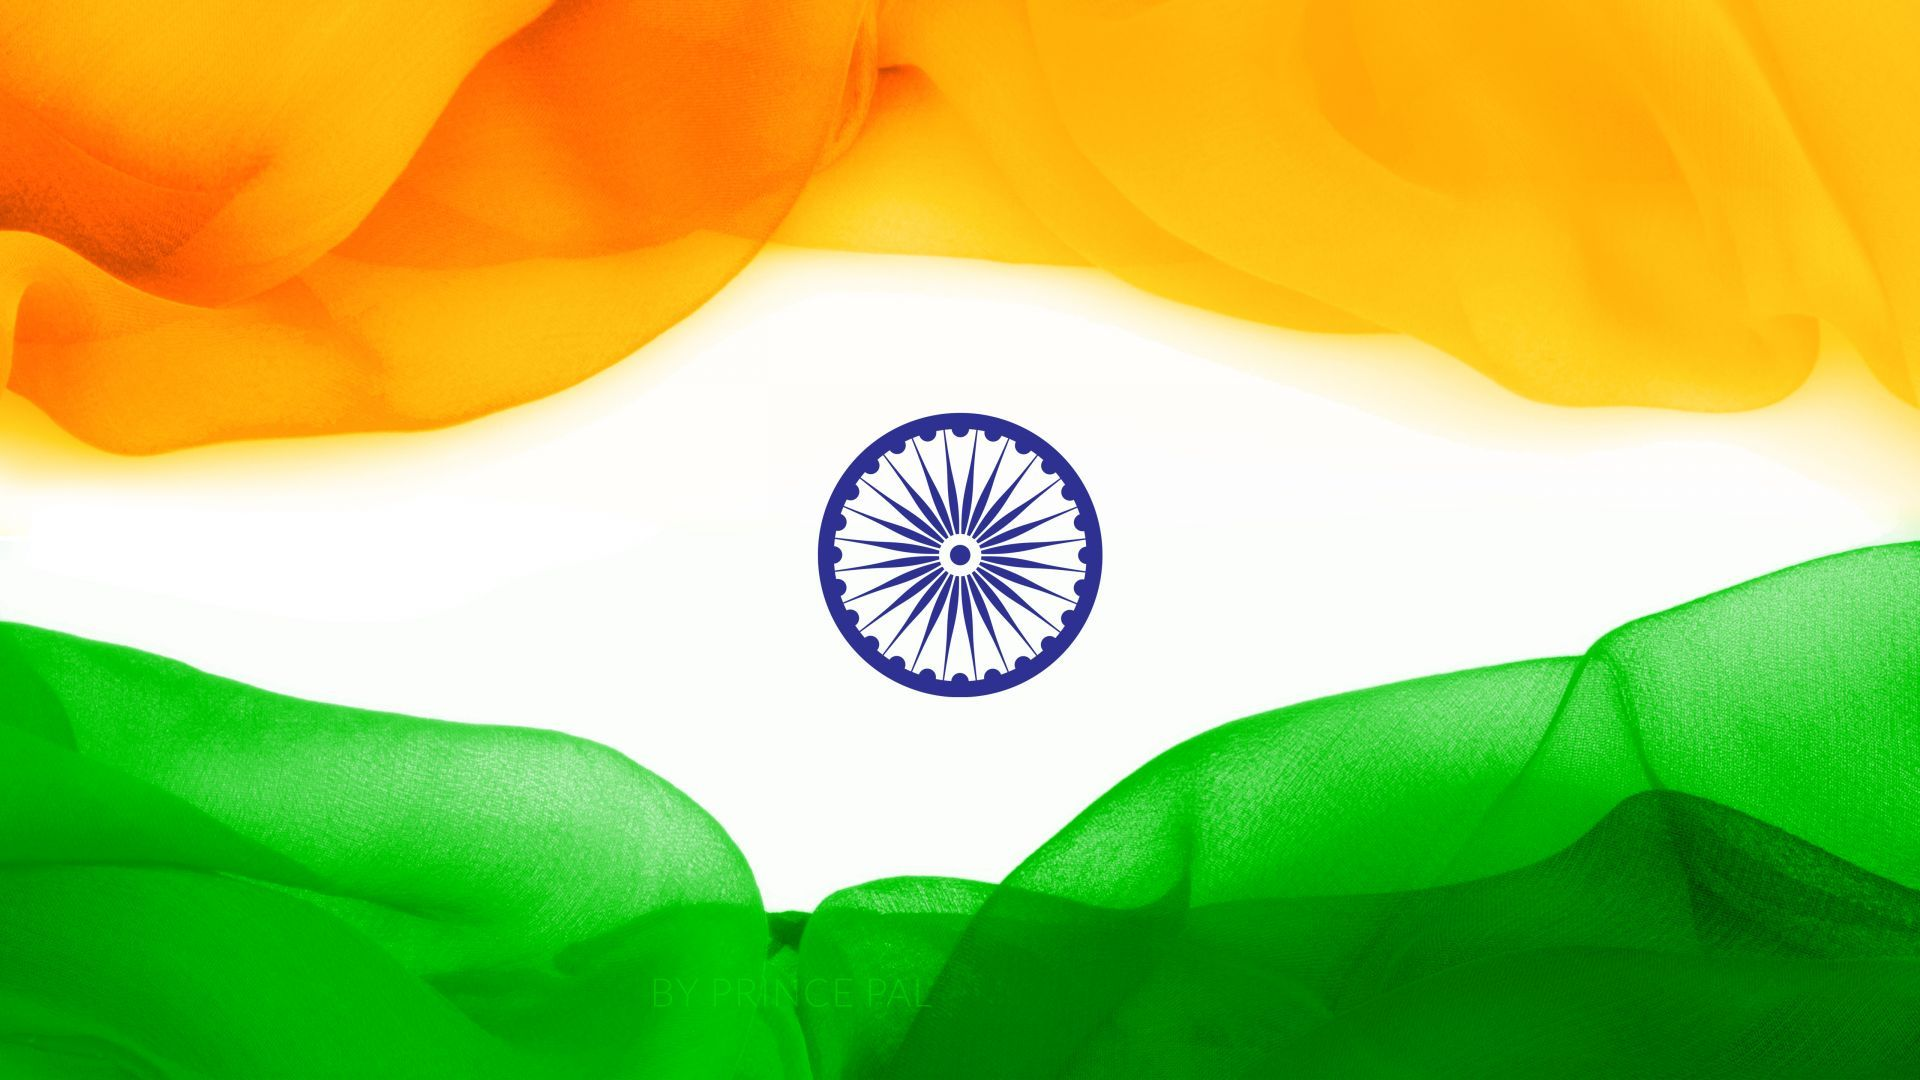 Flag Of India Tricolor Hd 4k 5k National Flag Photo Flag